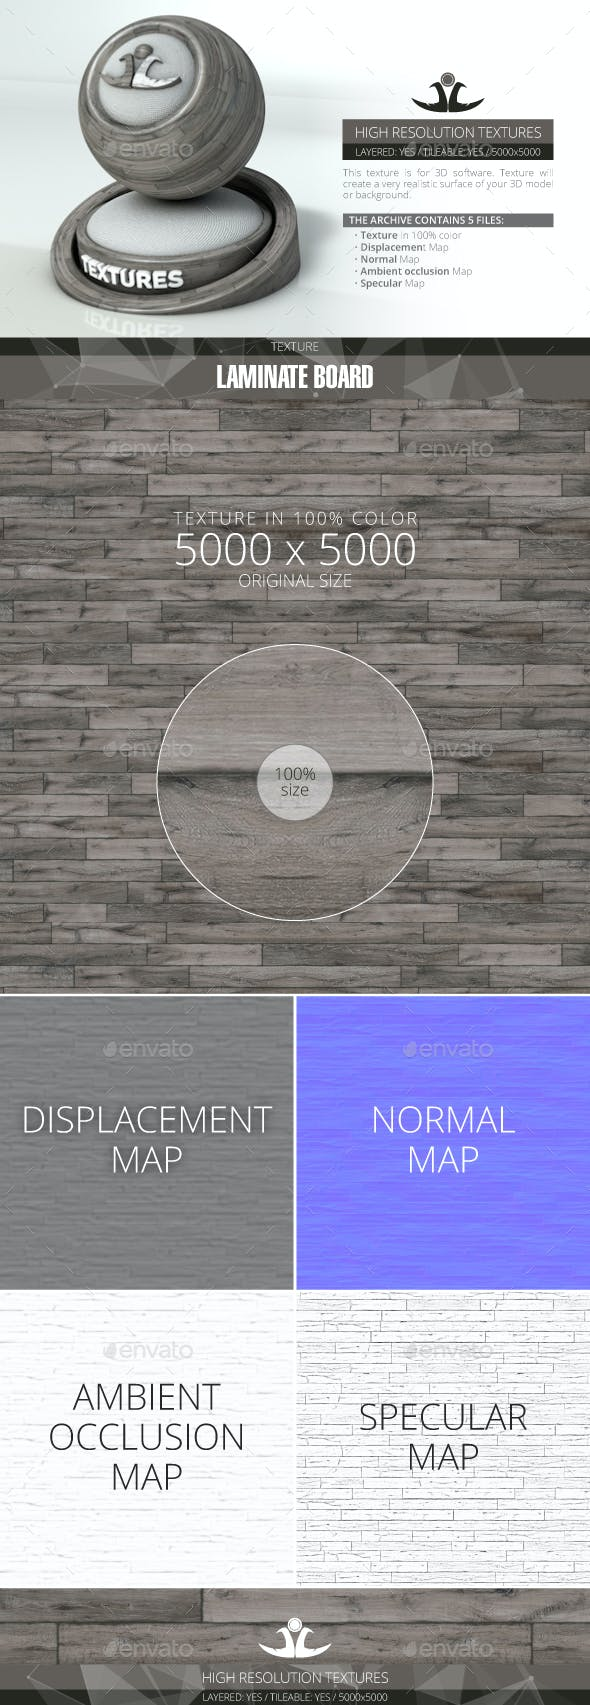 Laminate Board 74 - 3DOcean Item for Sale